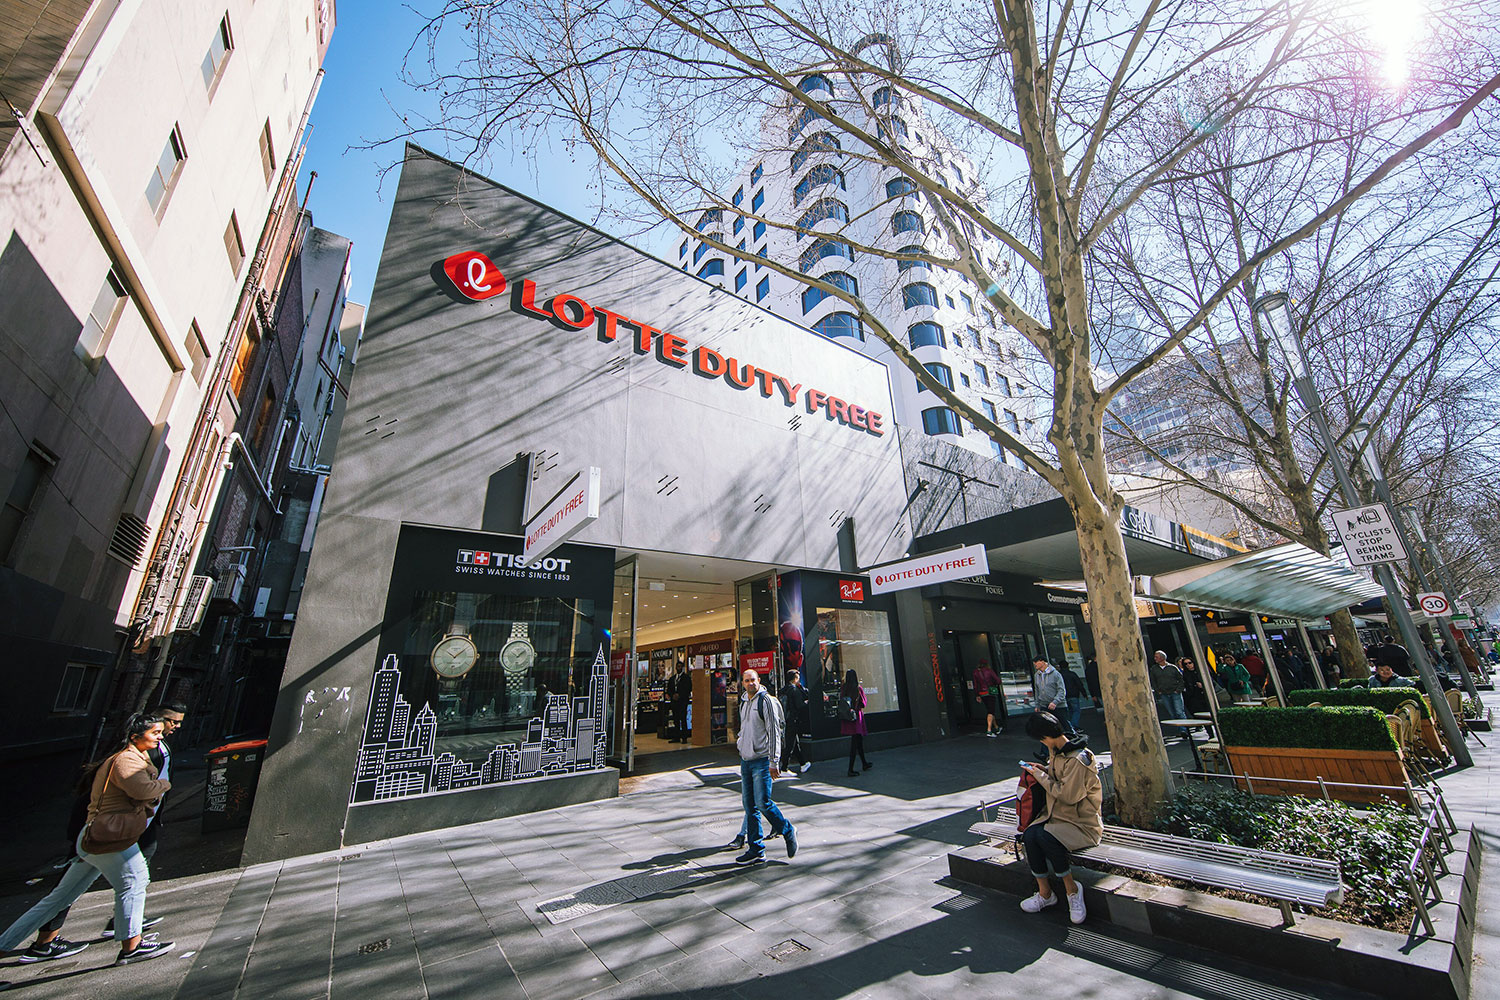 Lotte Duty Free Melbourne